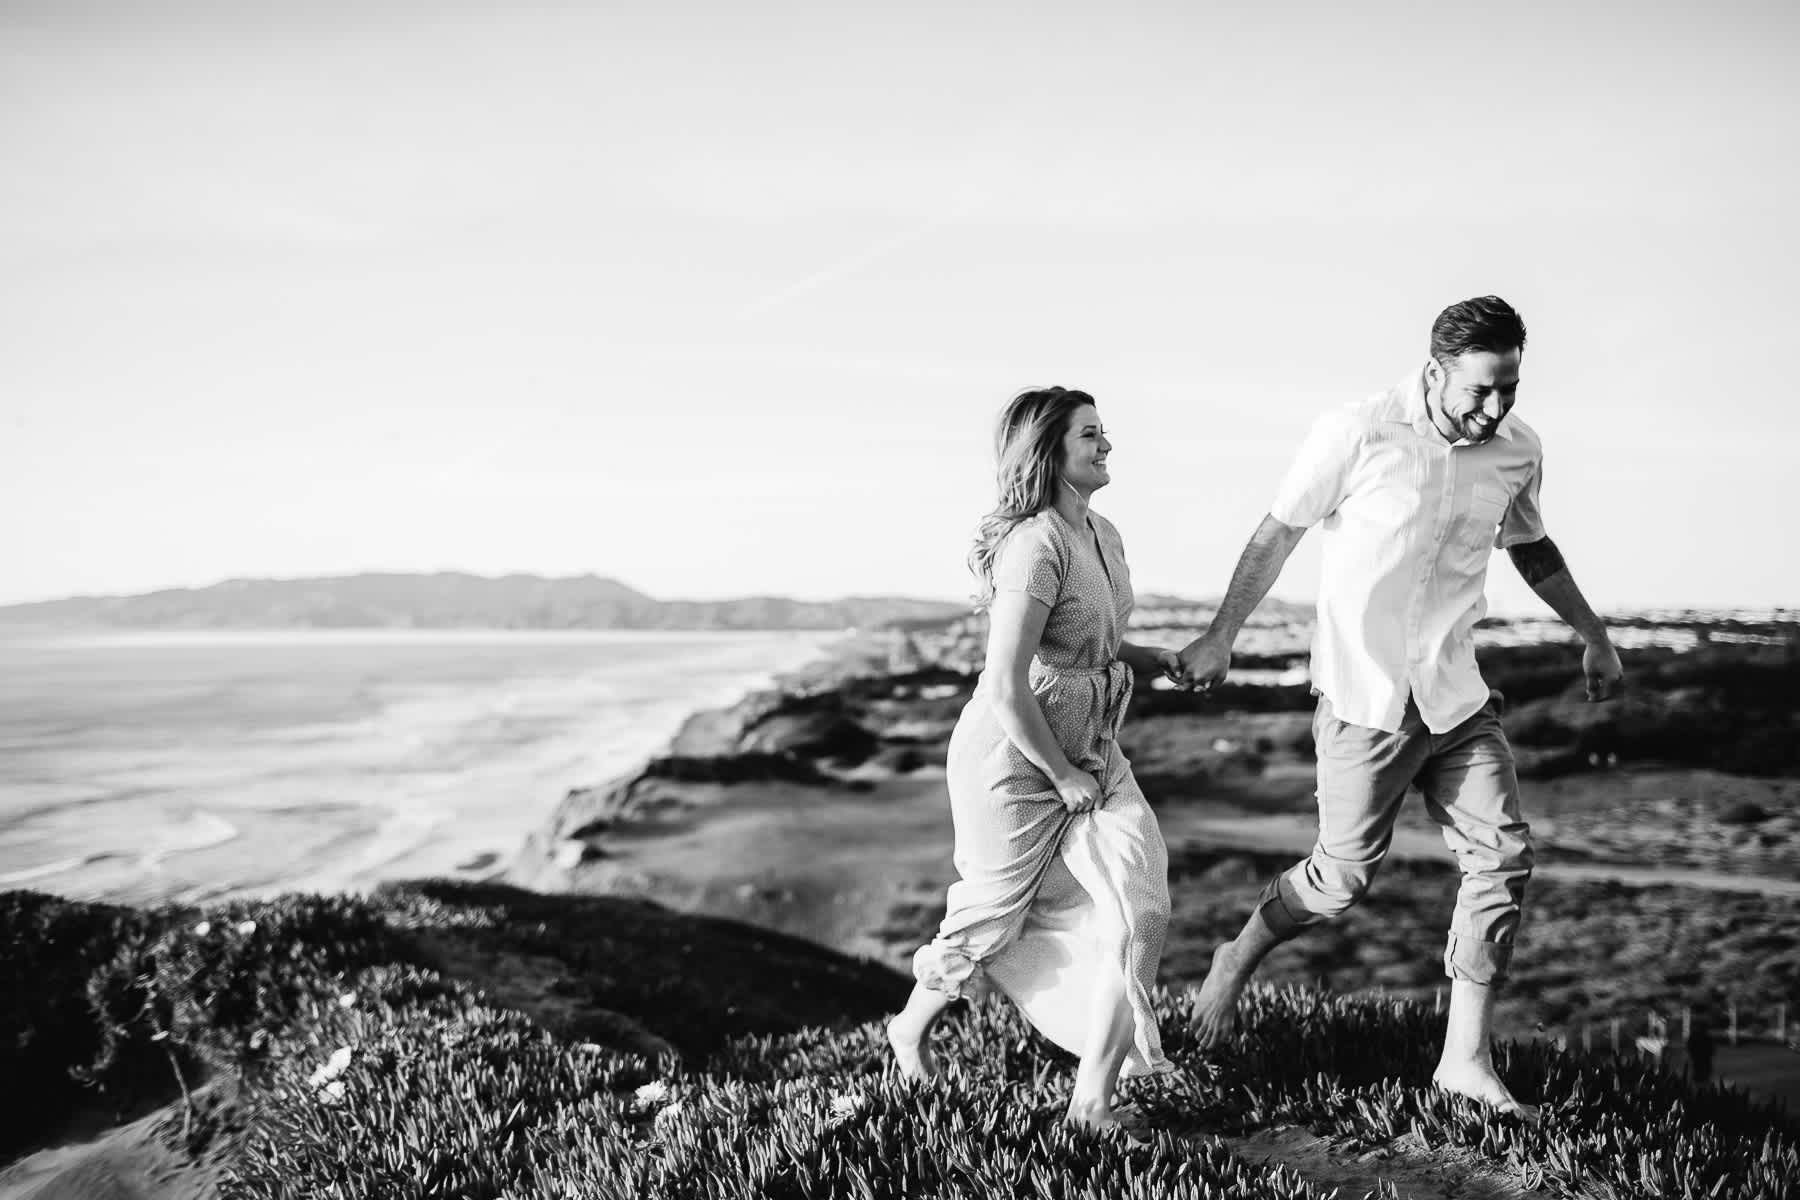 fort-funston-engagement-session-sunset-fun-beach-session-22